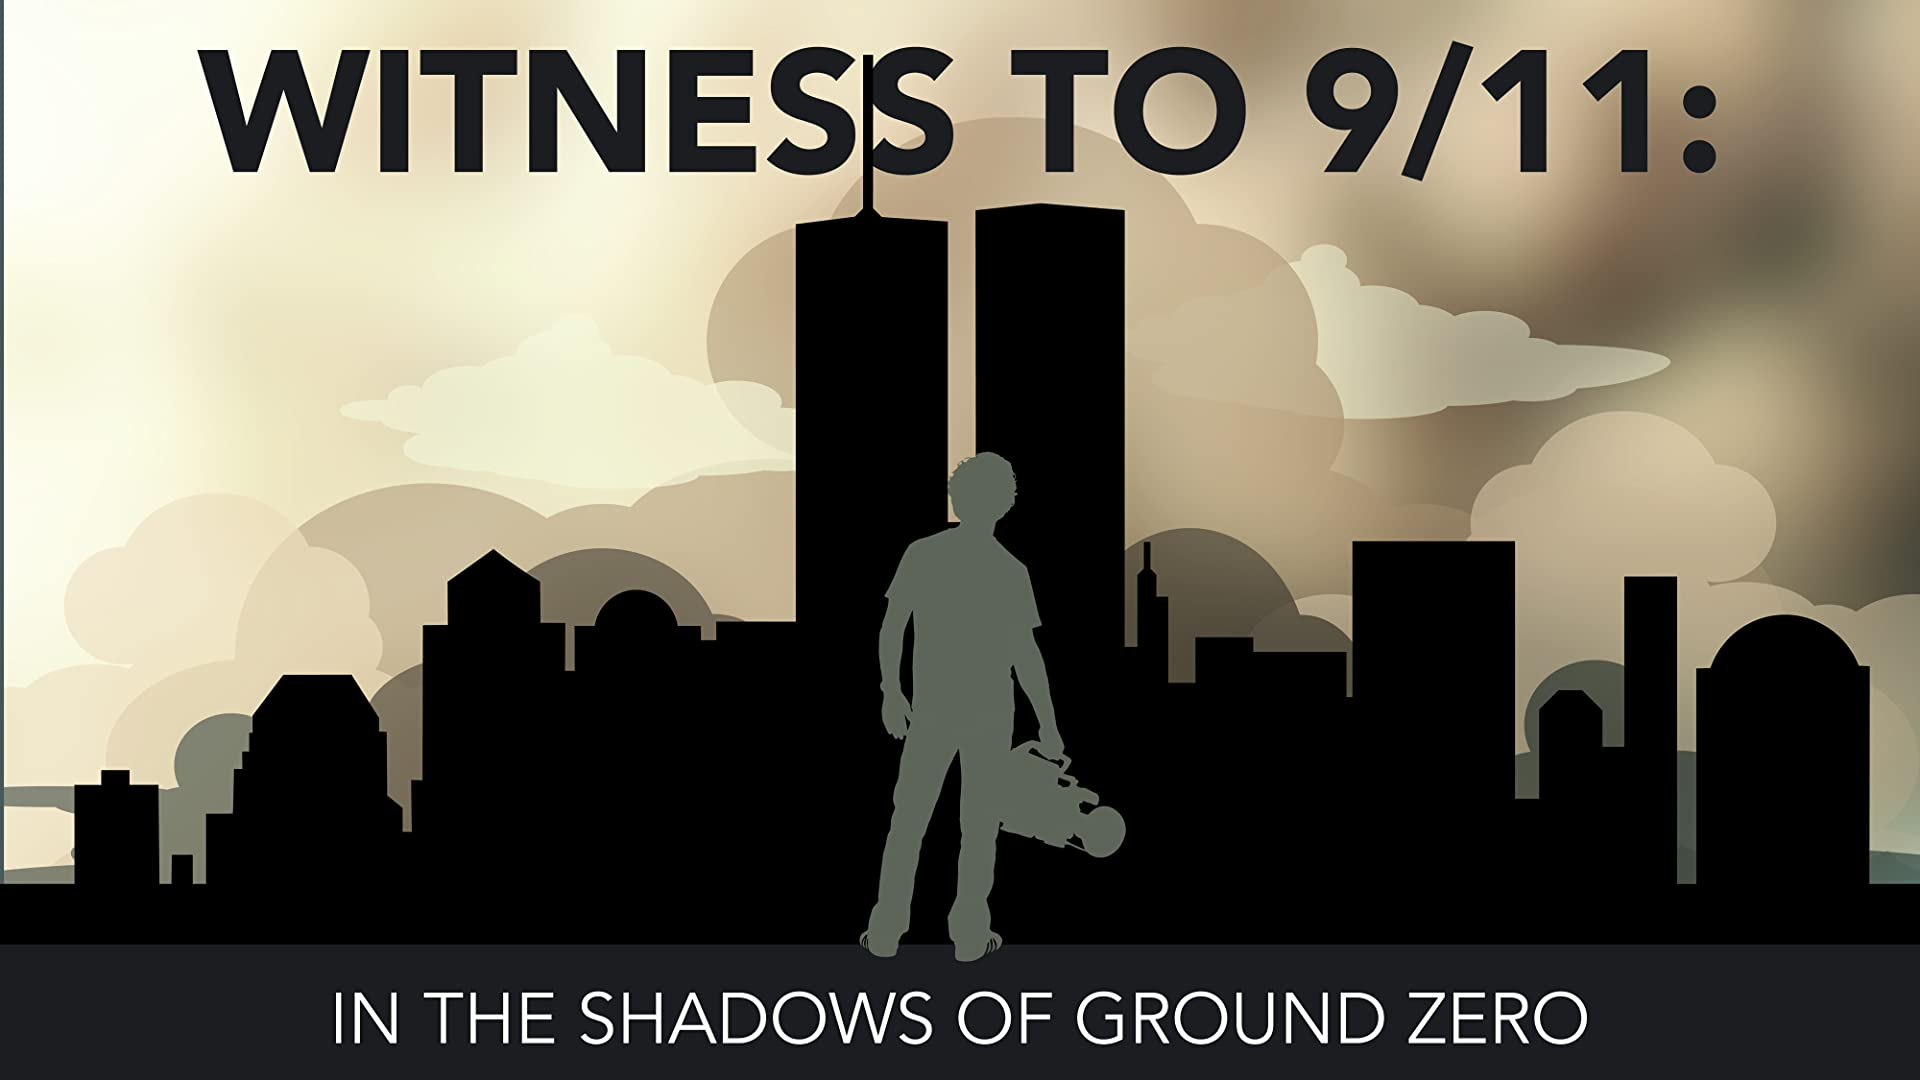 Witness to 9/11: In the Shadows of Ground Zero